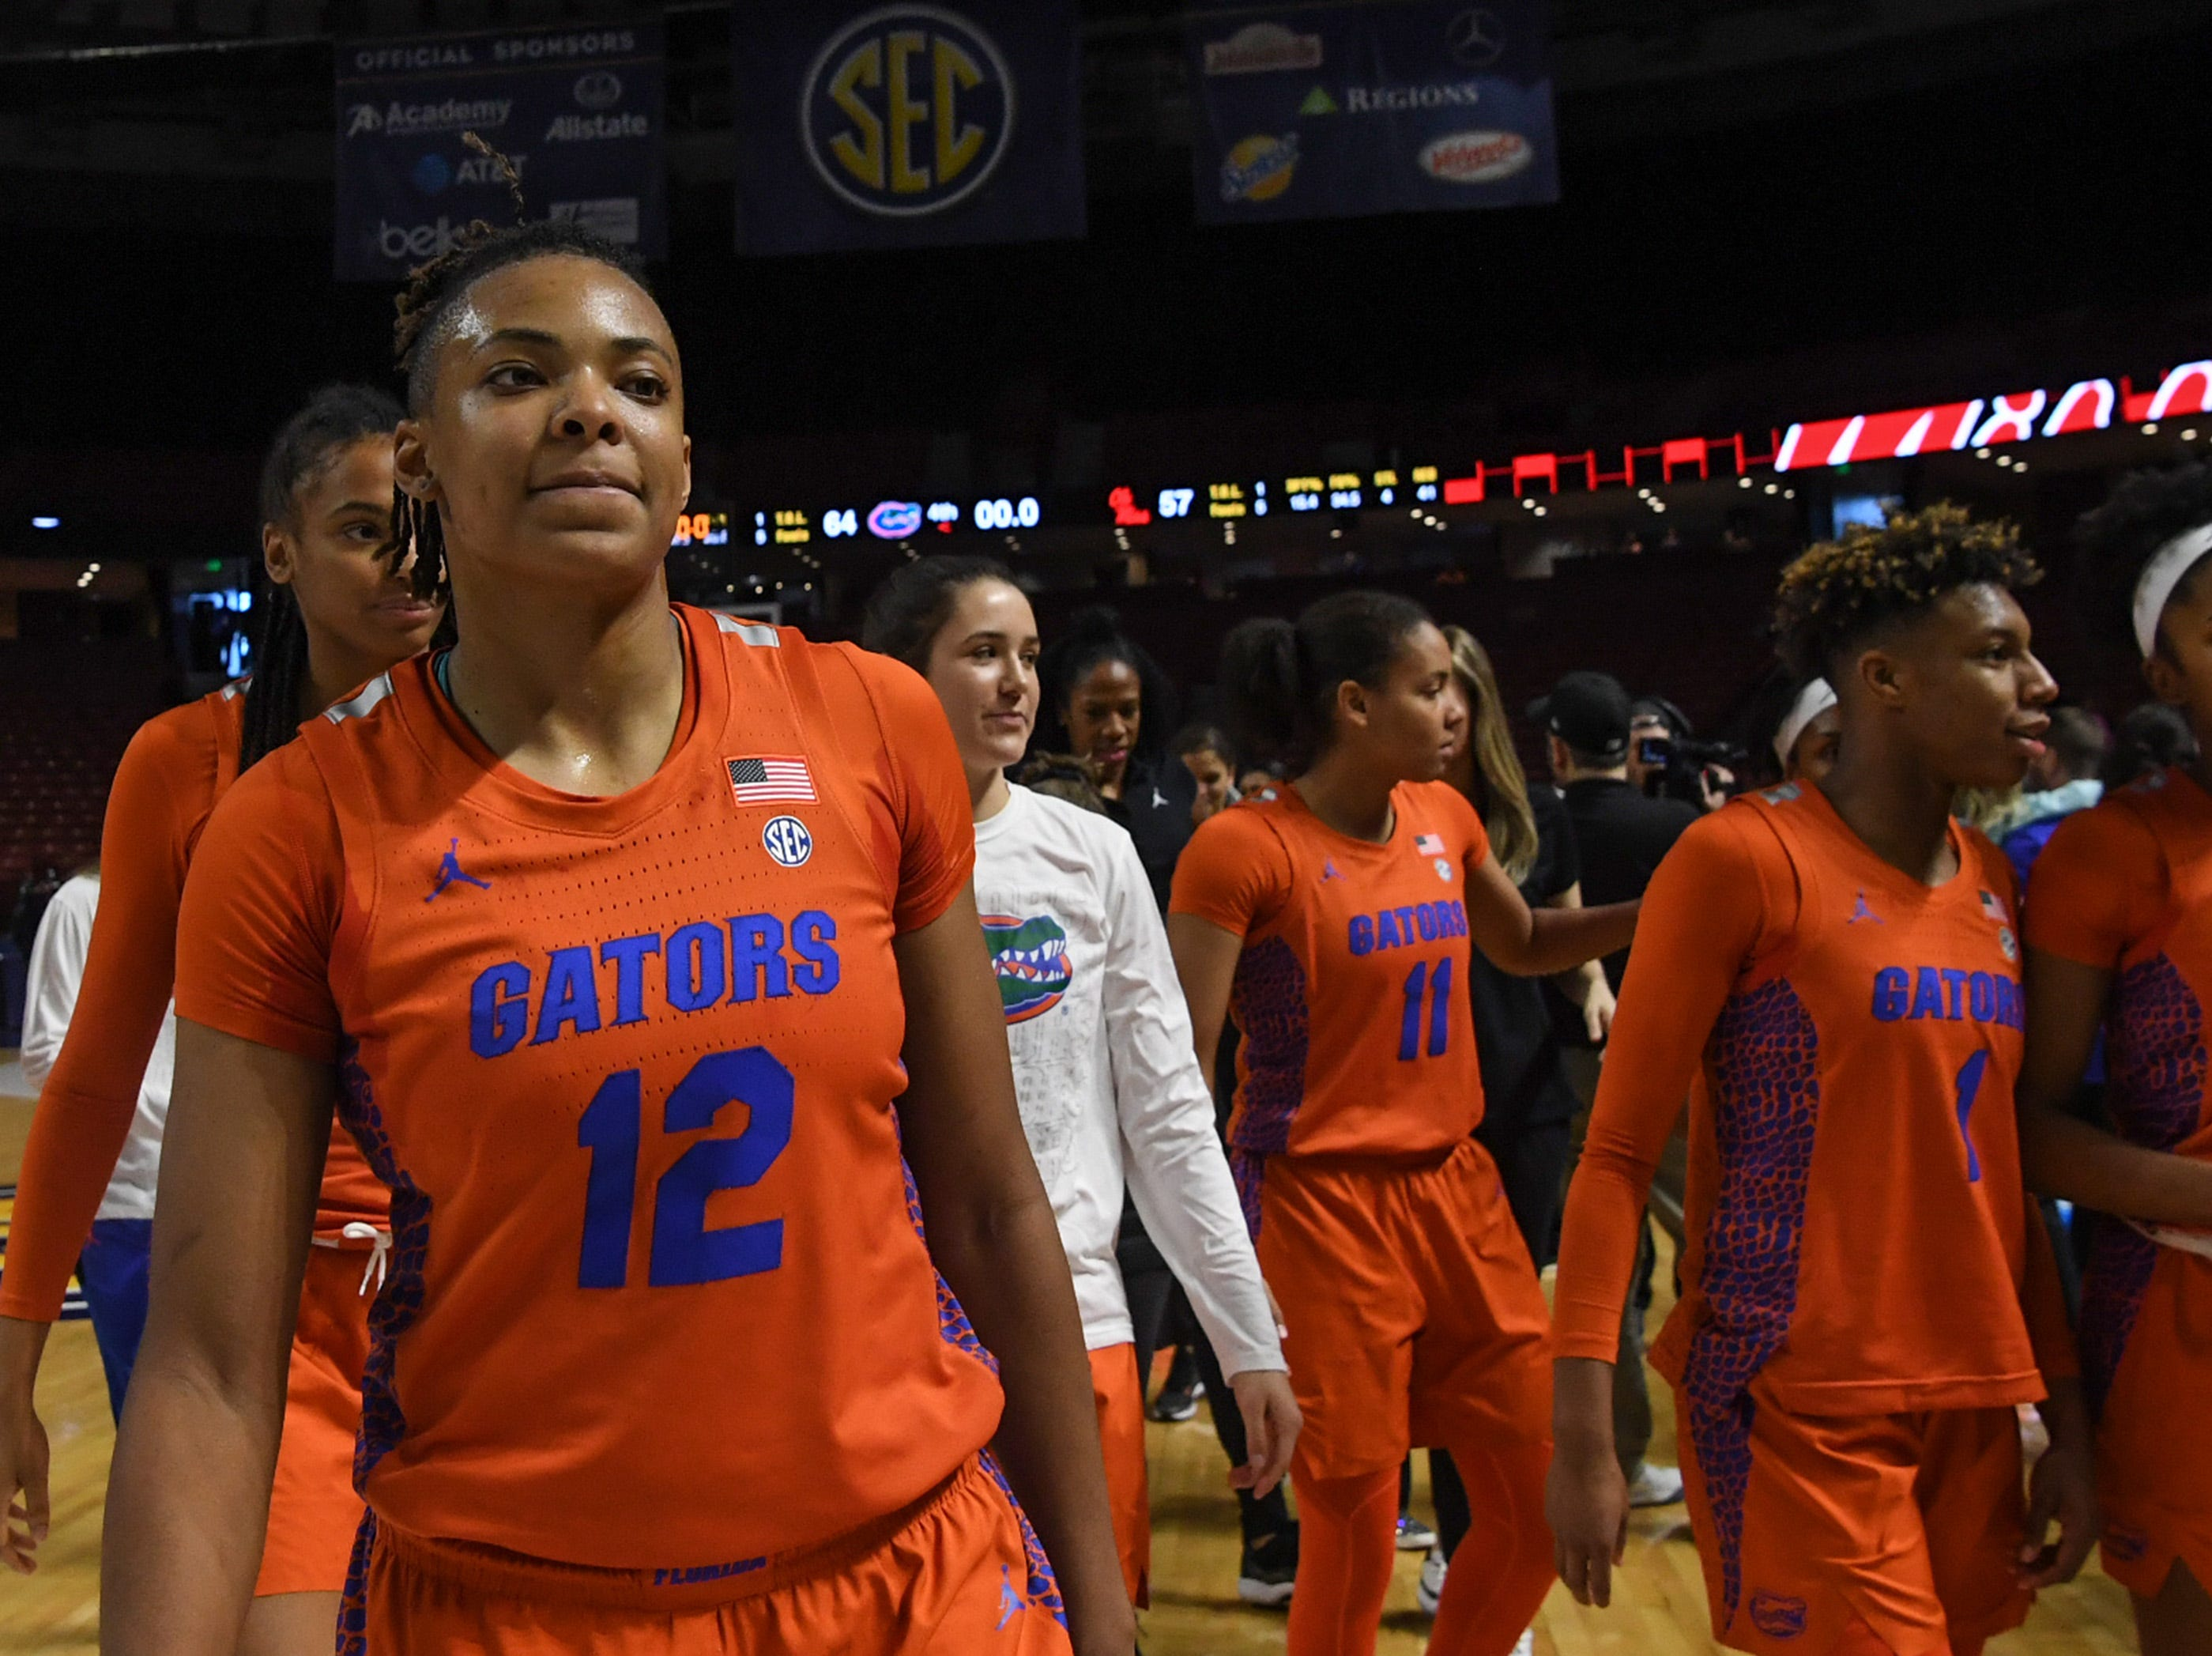 Florida walks off the court after their win over Ole Miss during the Southeastern Conference Women's Tournament game at Bon Secour Wellness Arena in Greenville Wednesday, March 6, 2019.